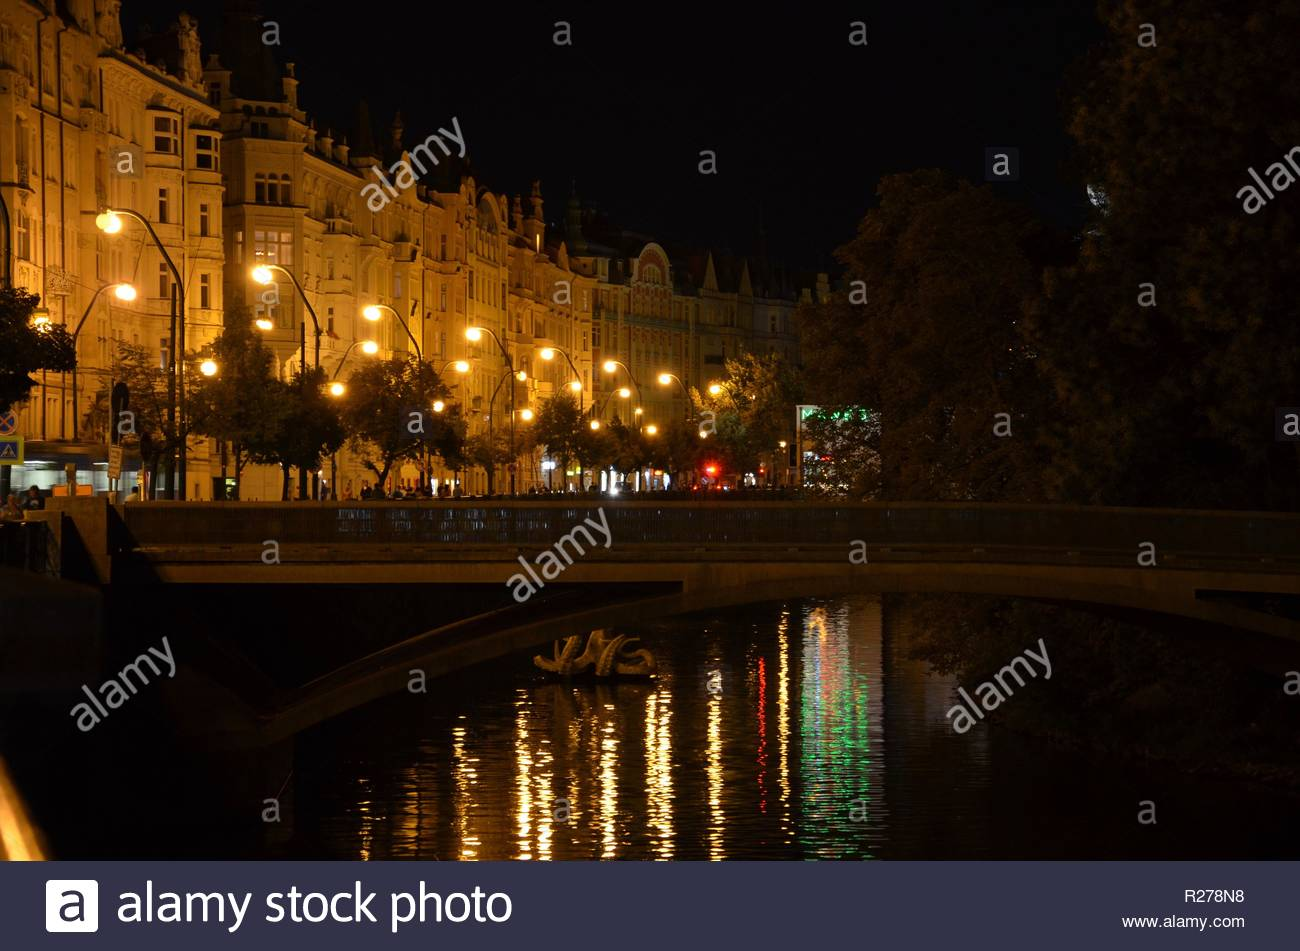 Prague at night, illuminated street, reflections of the lights on water surface of river Moldau - Stock Image